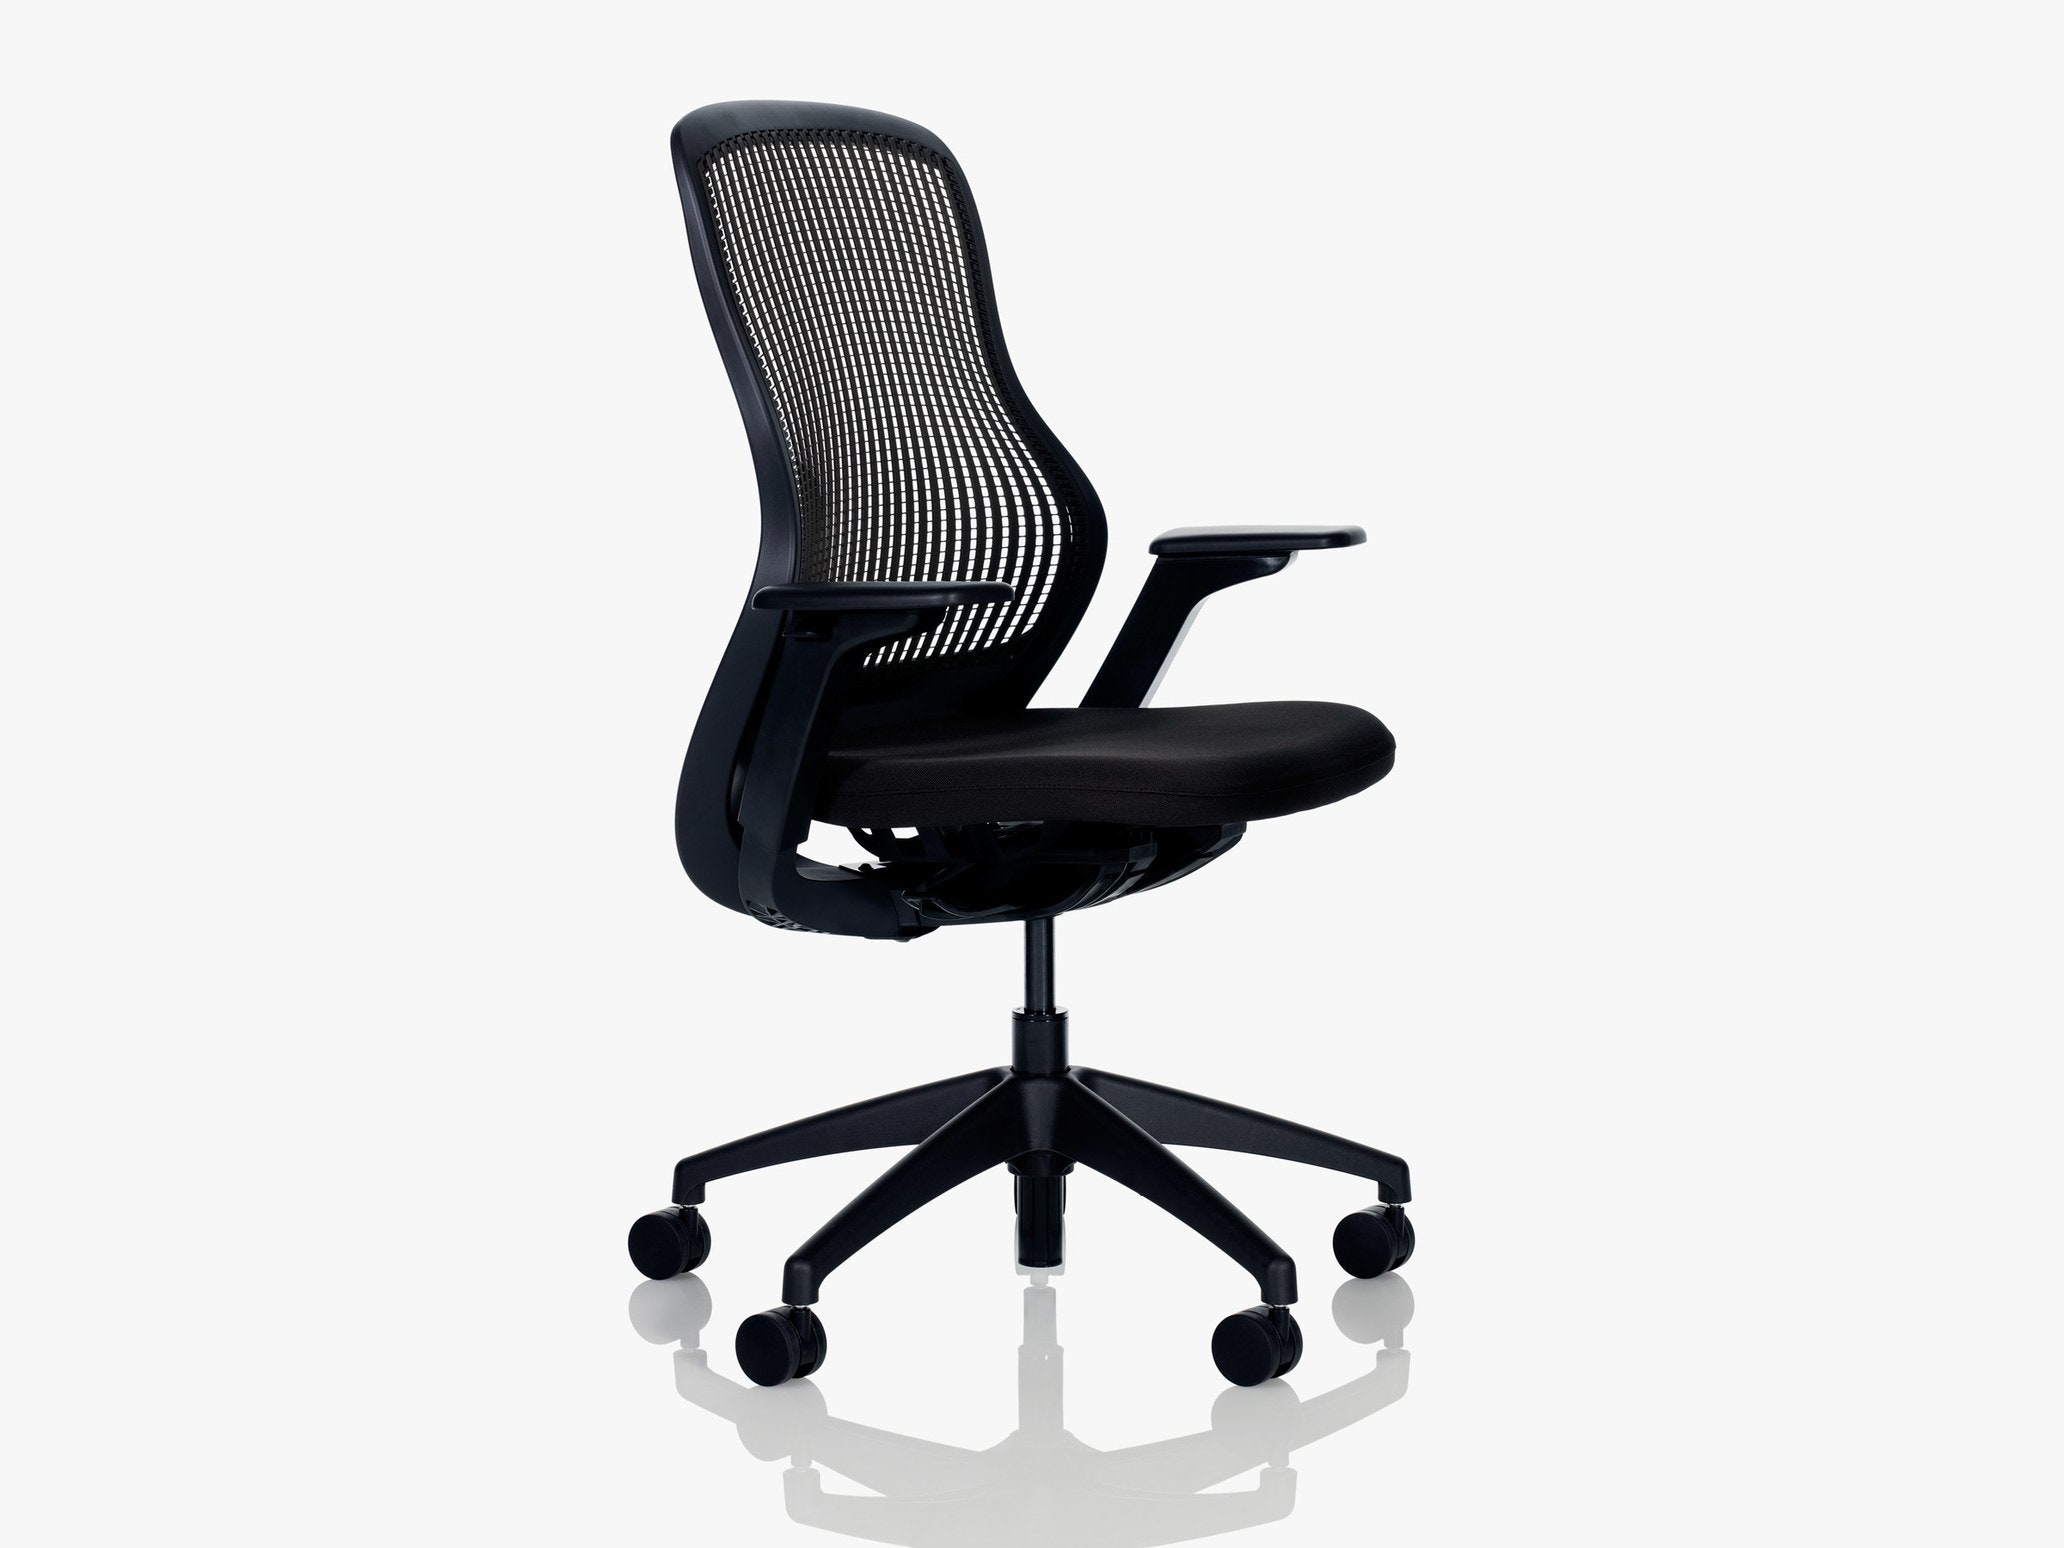 fancy desk chairs buy lycra chair covers australia best 5 super seats to upgrade your